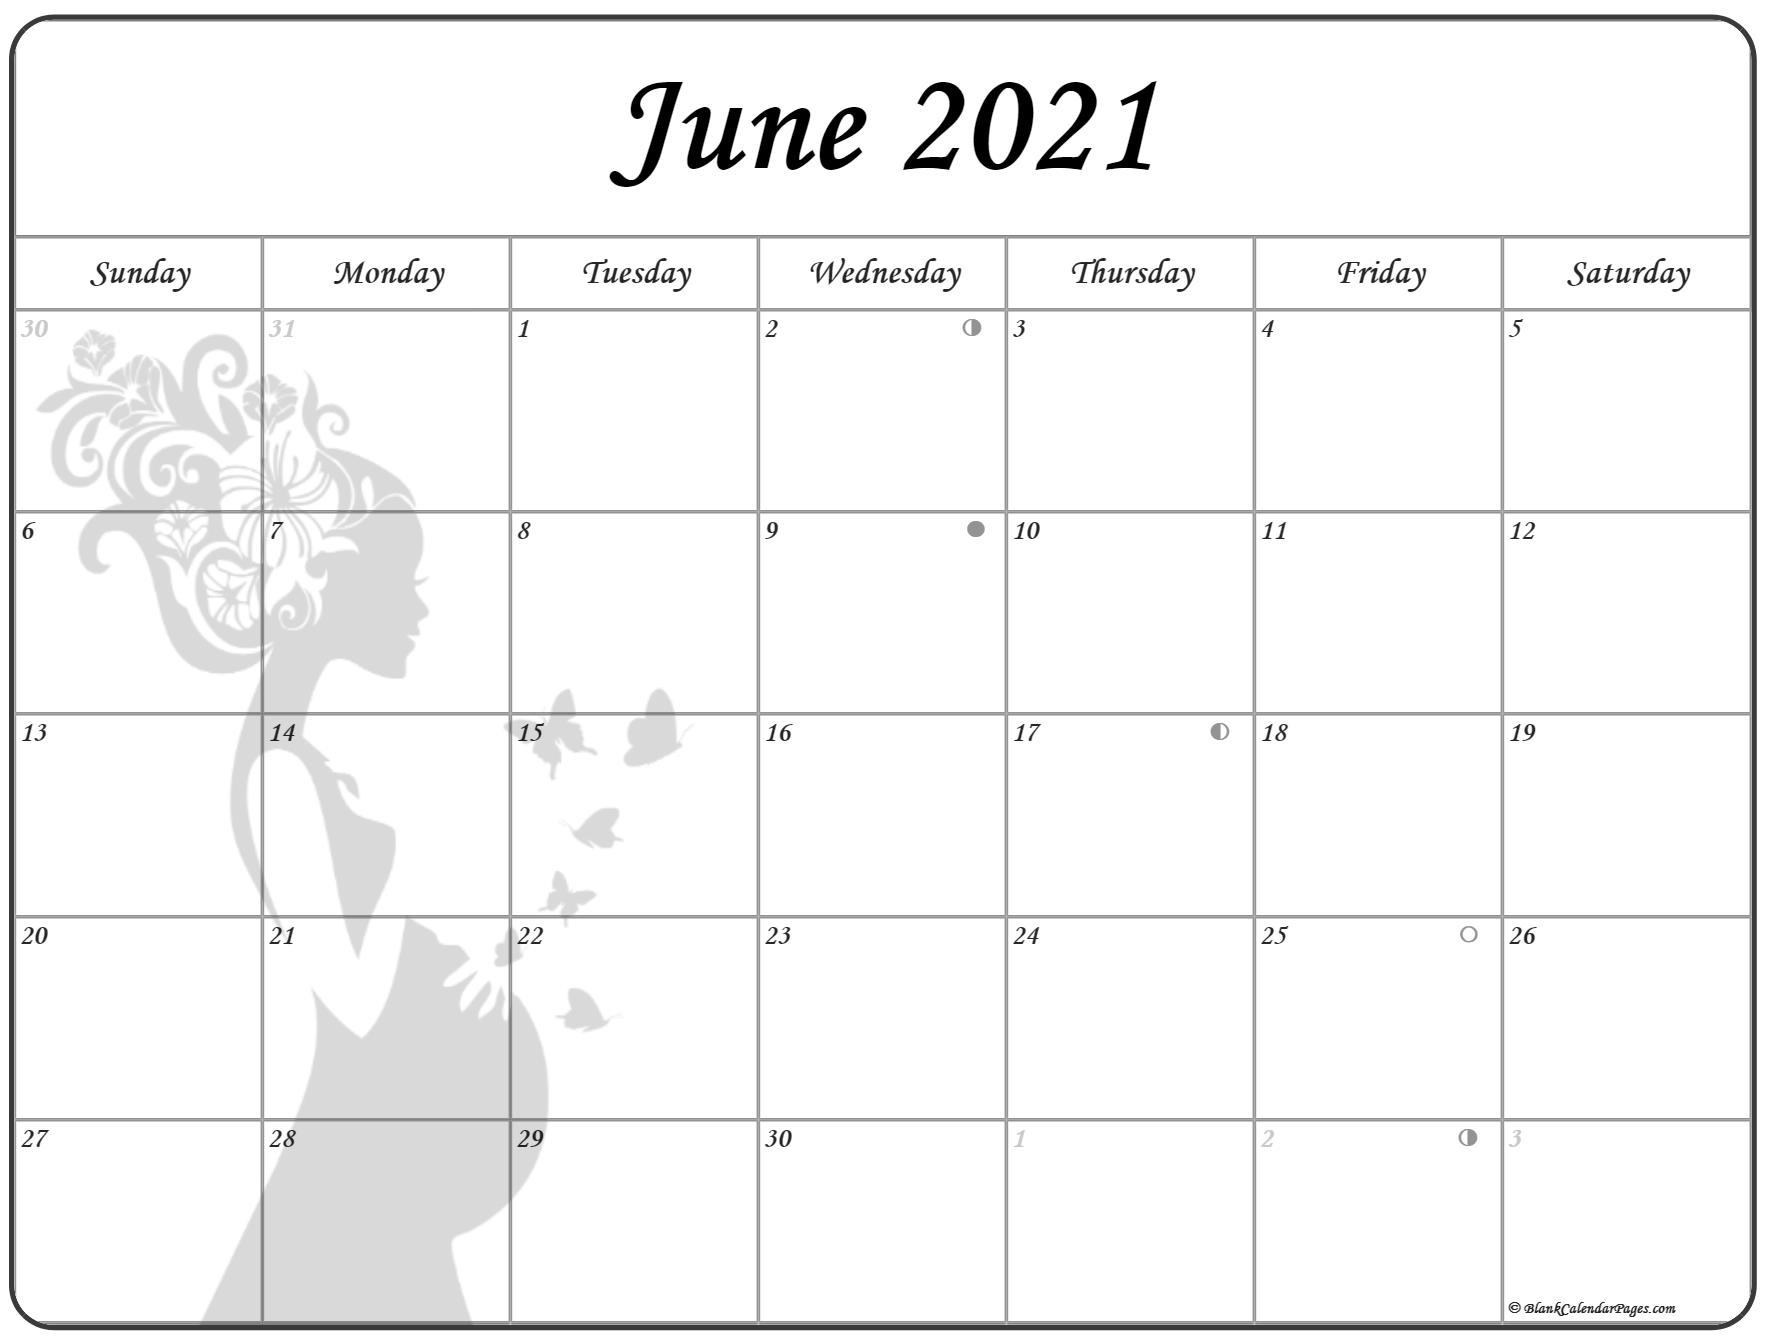 Collection Of June 2021 Photo Calendars With Image Filters